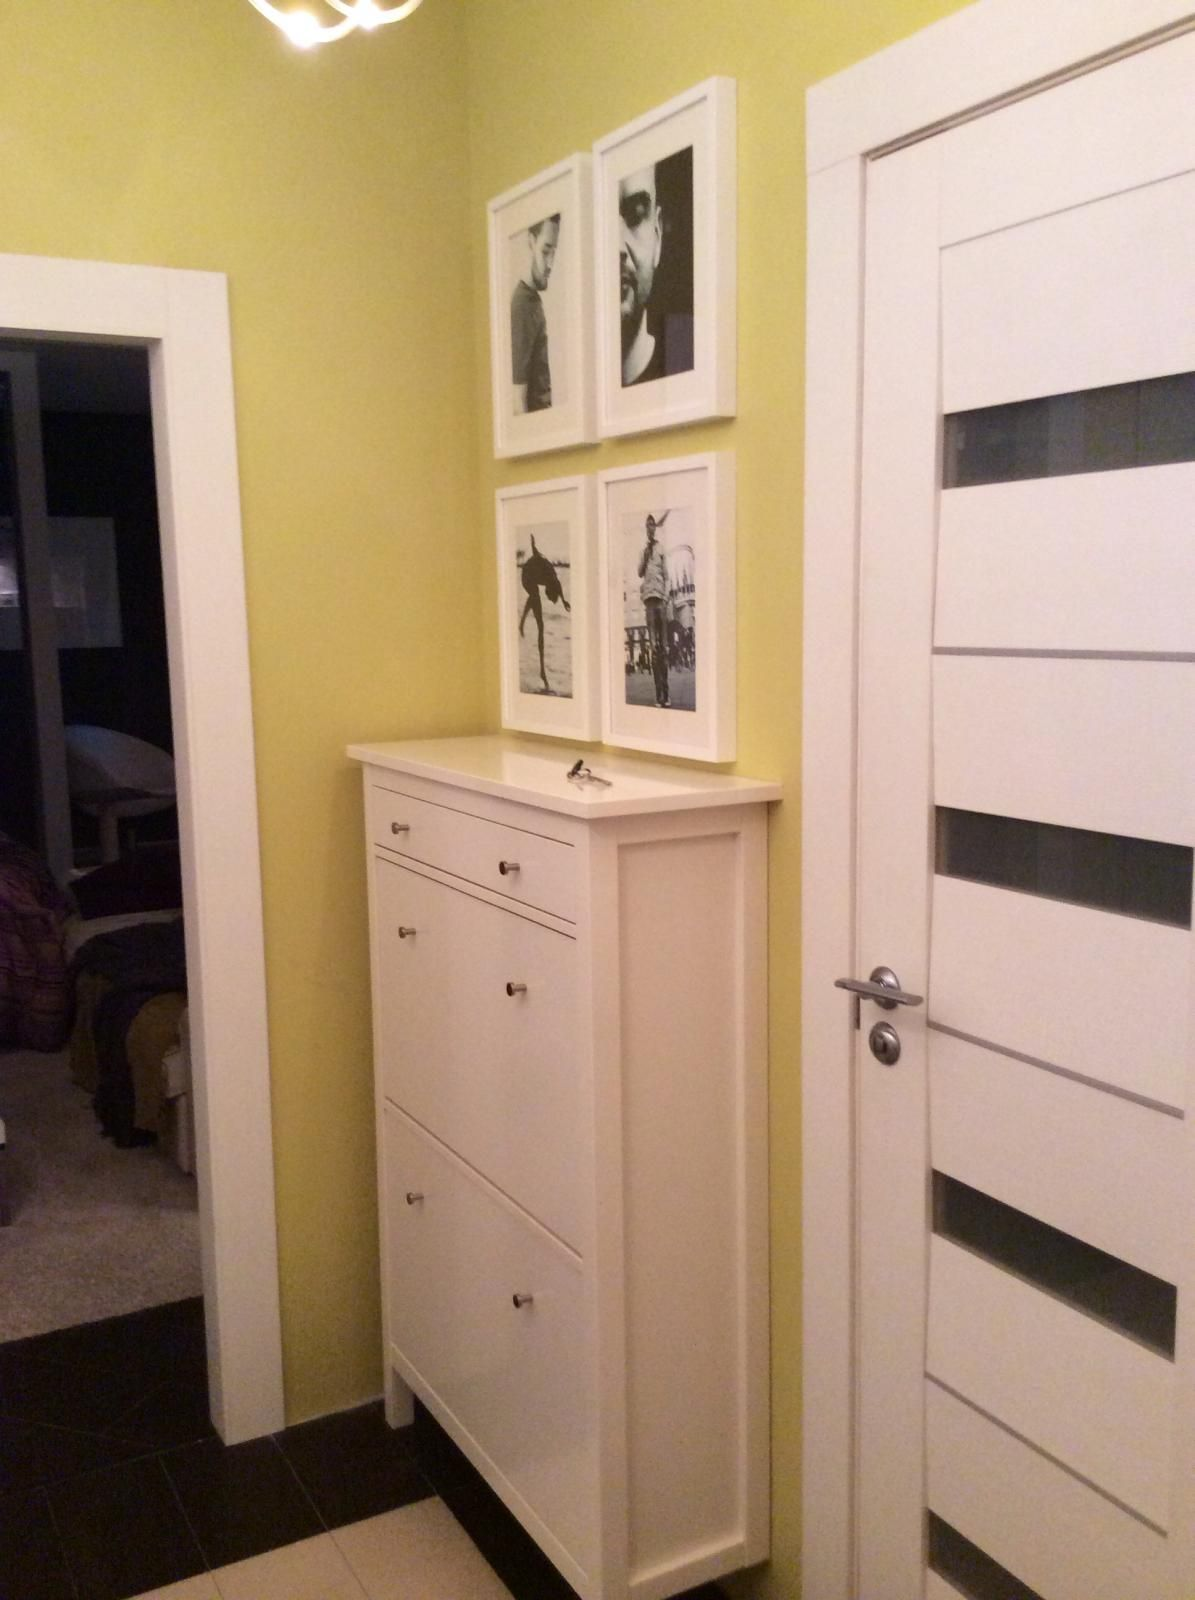 Hemnes strandmon and in the interior of the bedroom more foto ...